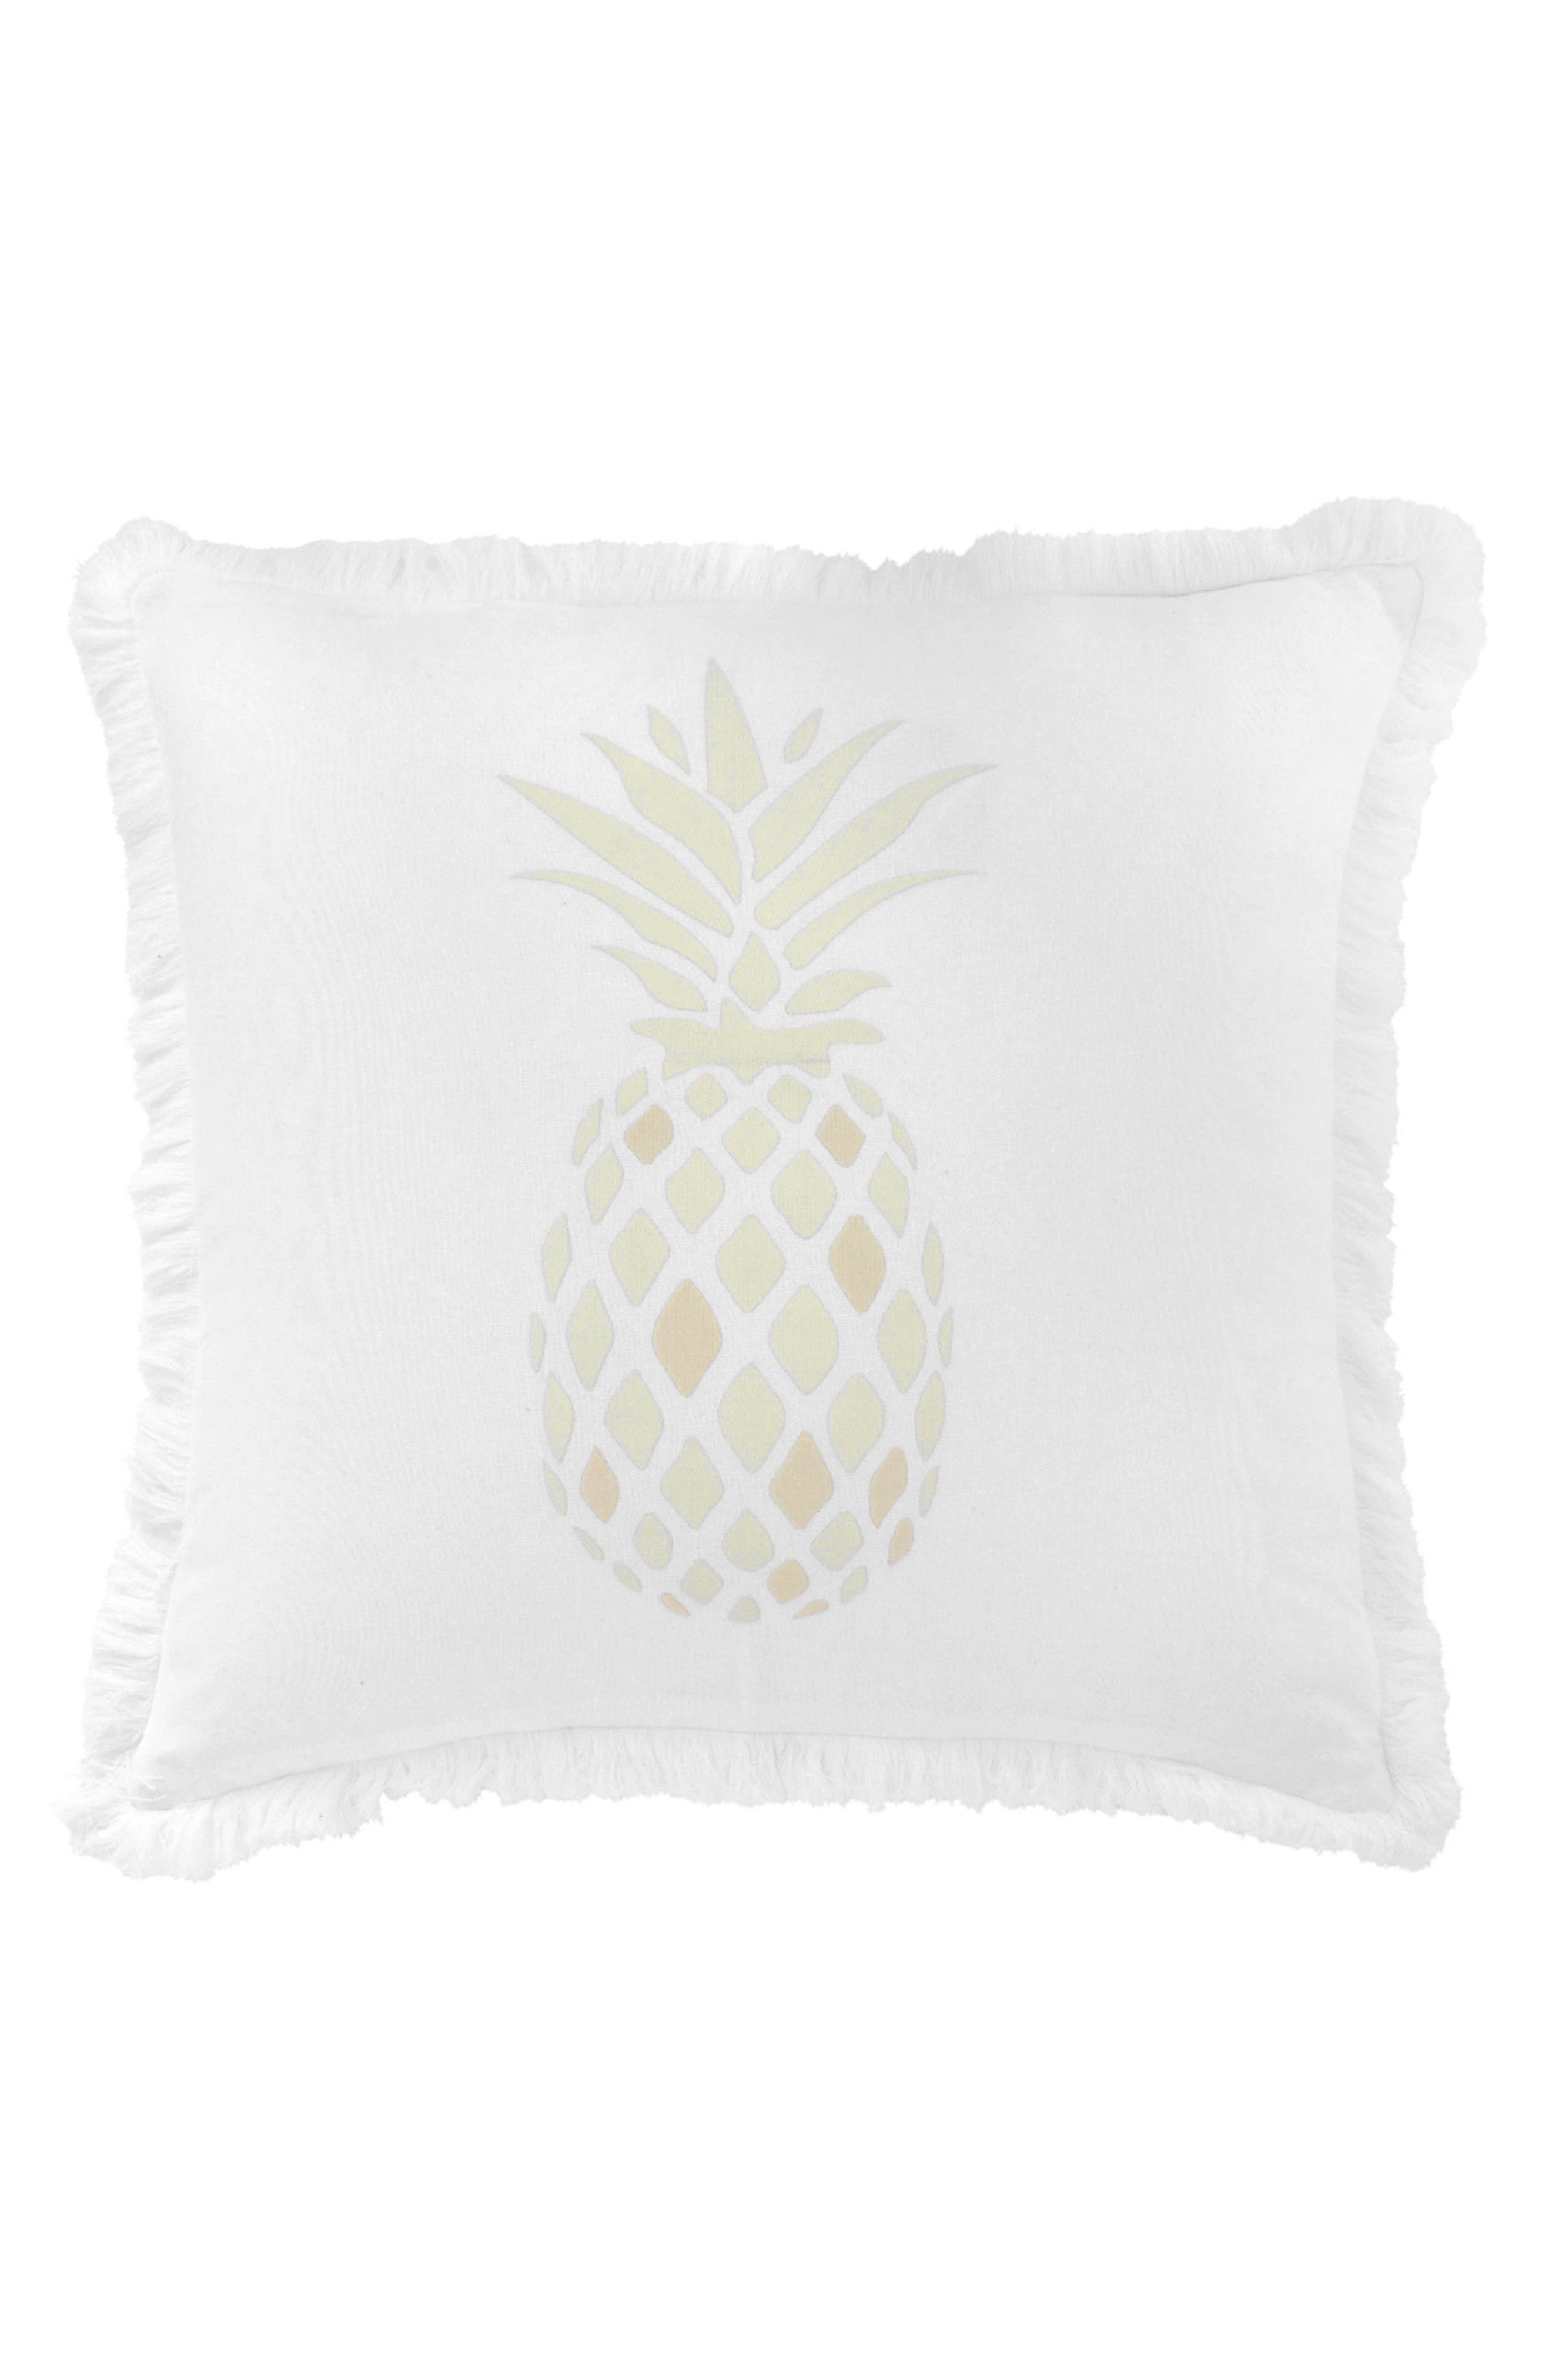 Southern Hospitality Pineapple Accent Pillow,                             Main thumbnail 1, color,                             100